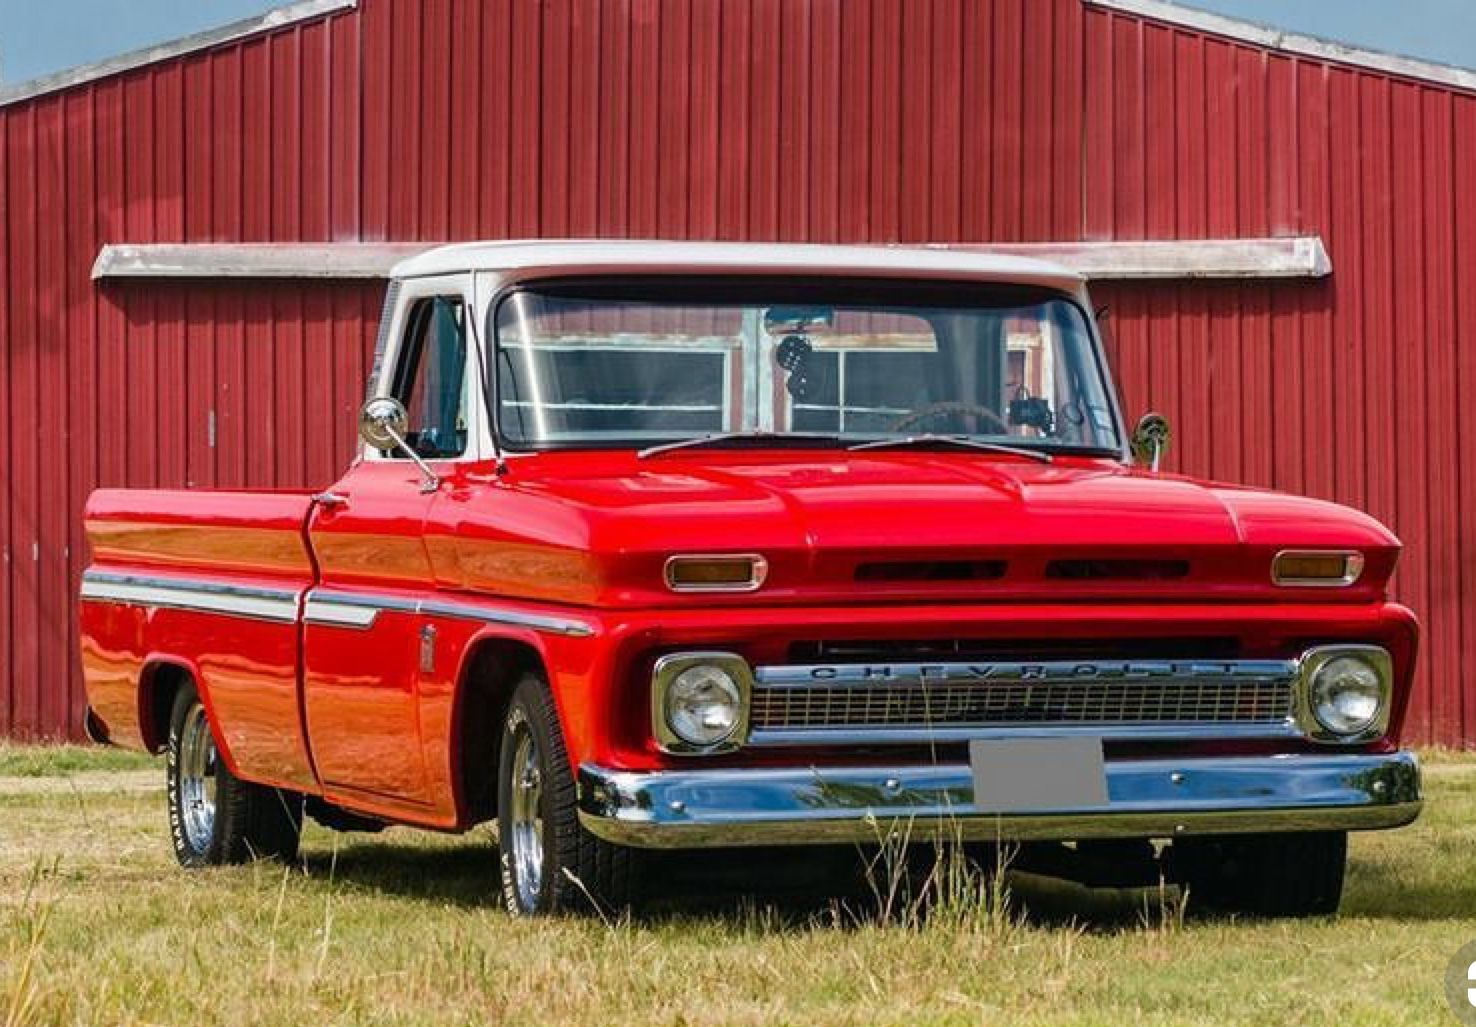 Pin By Clyde Brokaw On 1960 1972 Chevy Trucks Chevy Trucks Classic Pickup Trucks Classic Chevy Trucks